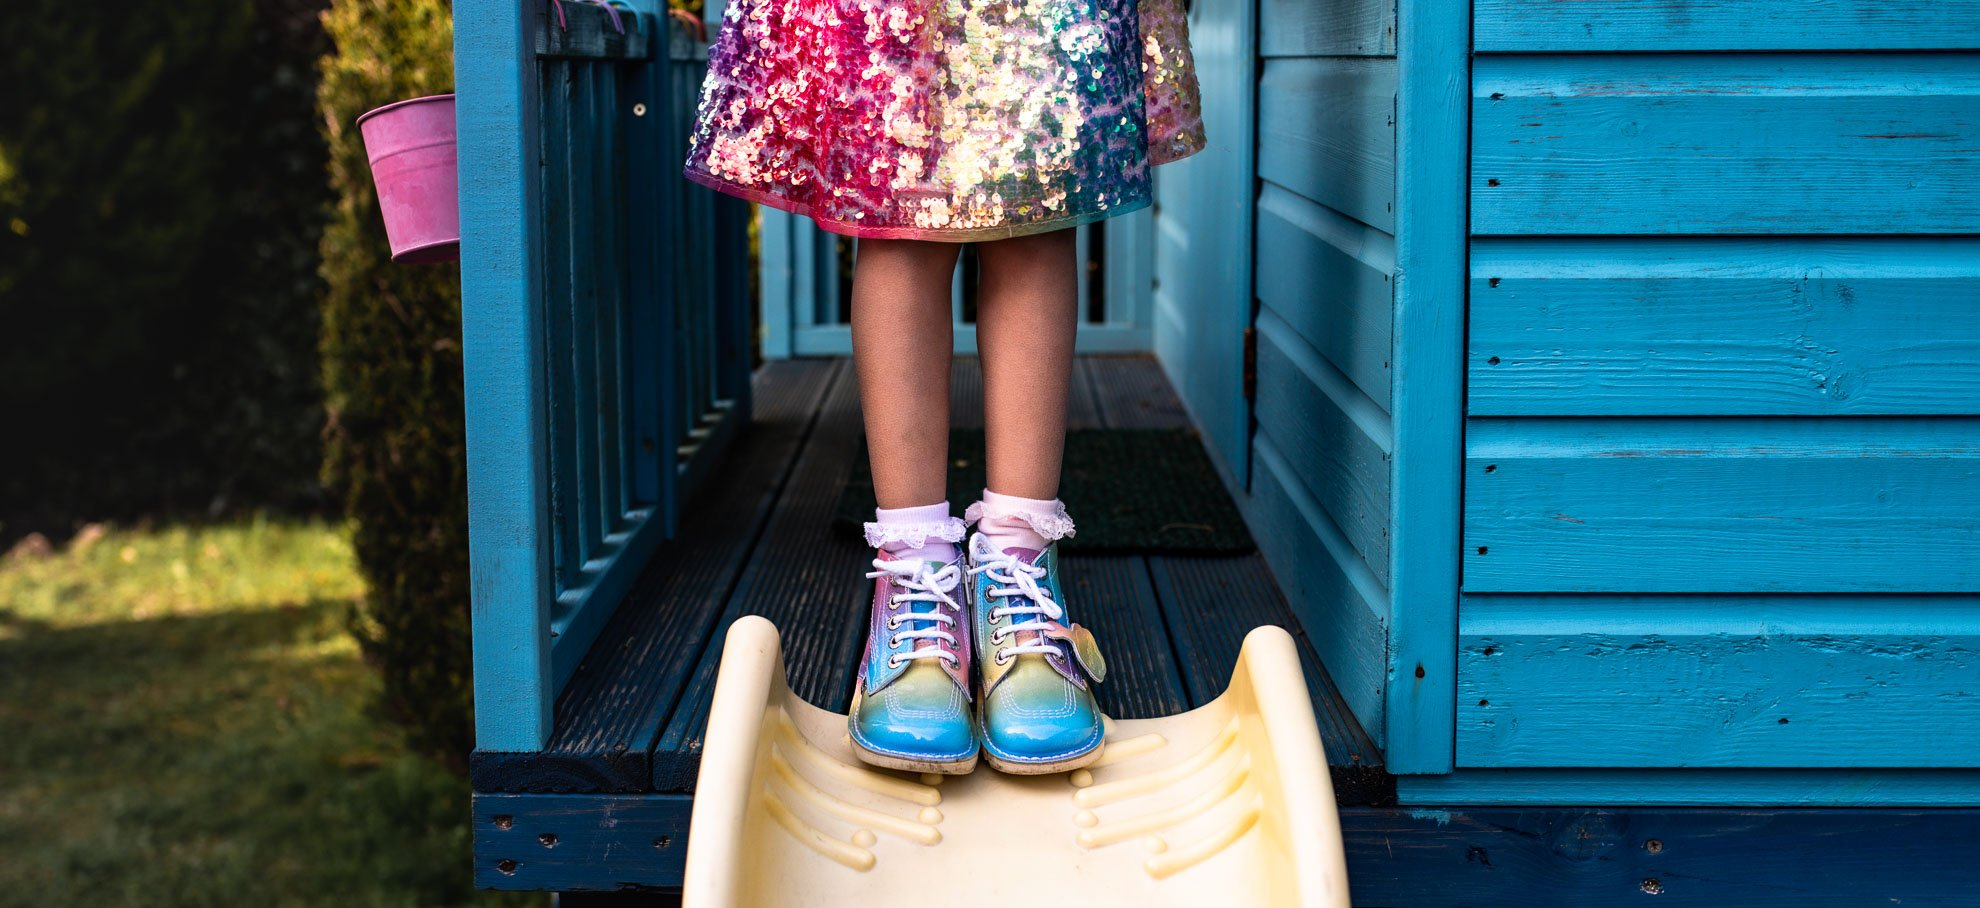 Child's shoes pose on top of slide